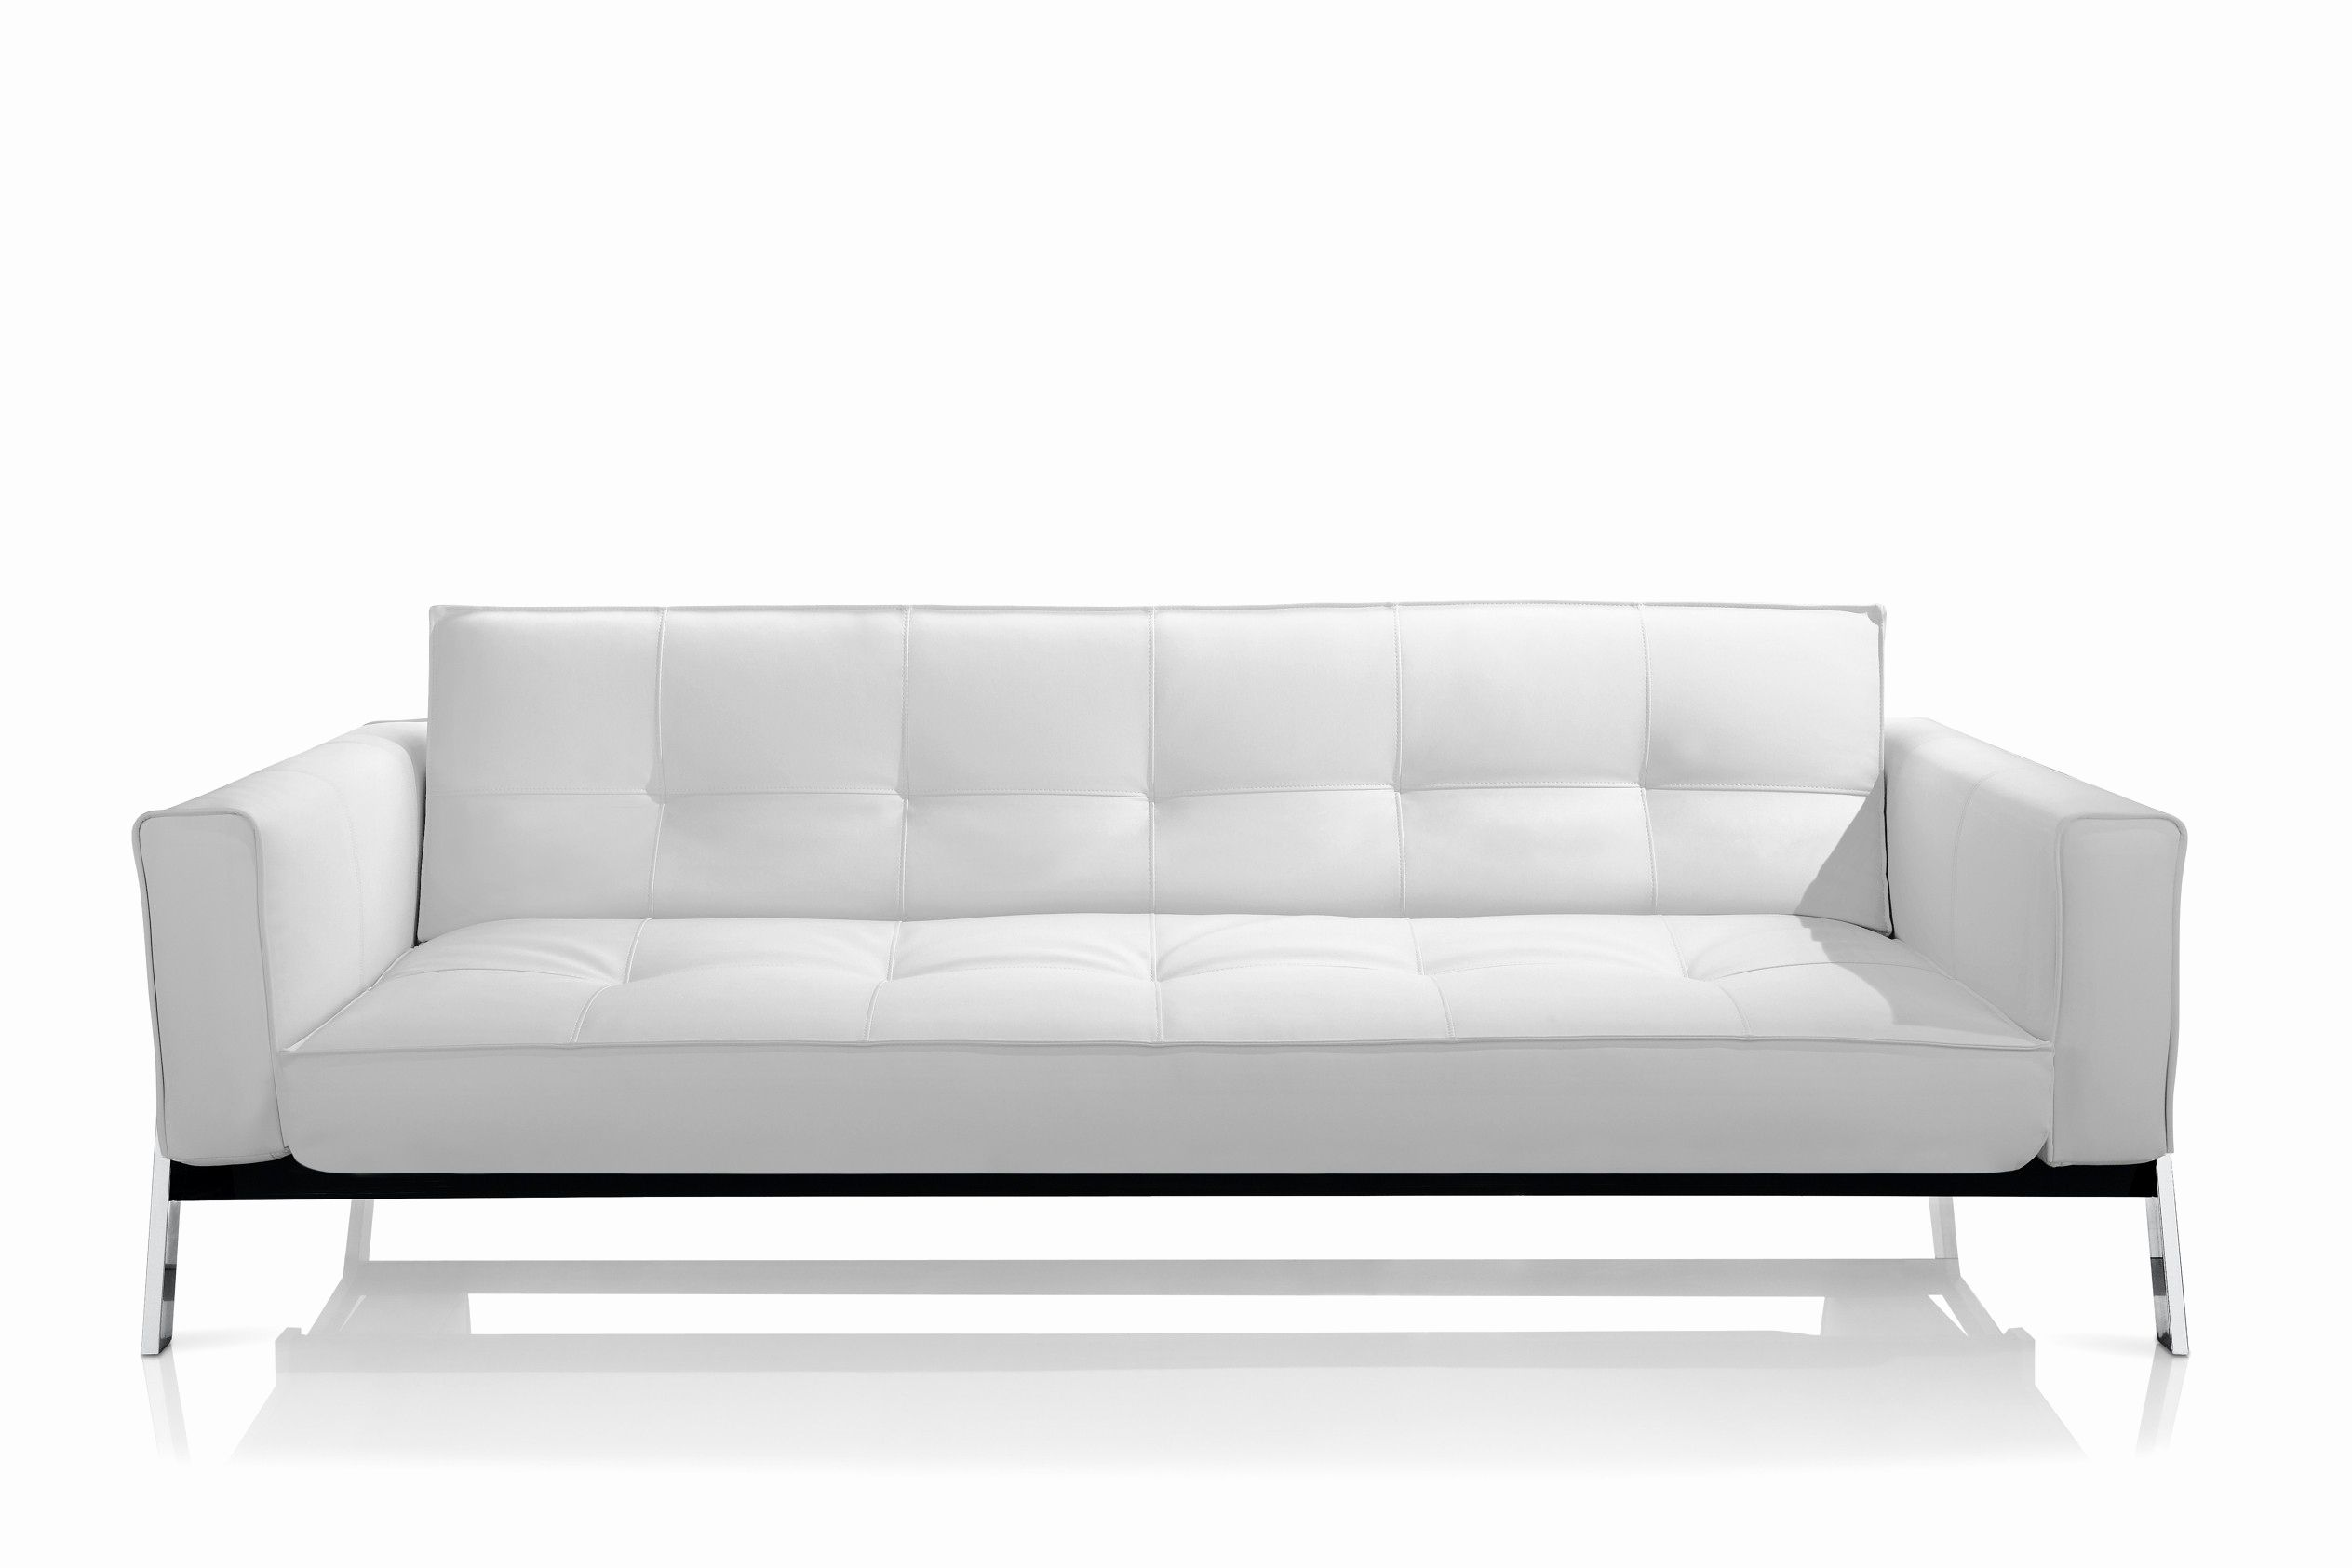 Contemporary Leather Sofa Bed Professional Cleaning London Awesome Sleeper Shot Lovely Interior White Canvas Modern Sofas For Sale How To